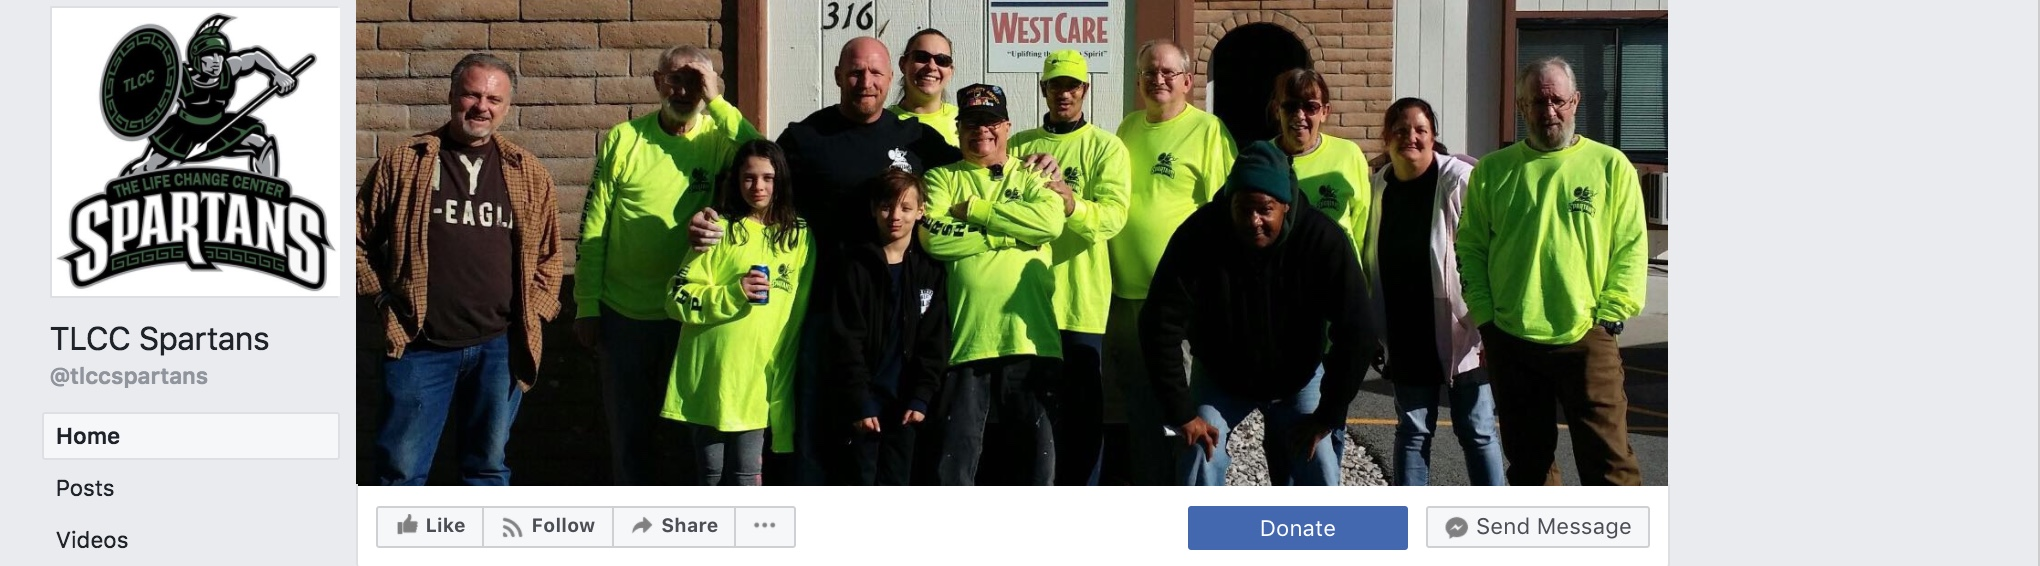 Denton's Spartans initiative has its own Facebook page and records the good deeds they do in the community.